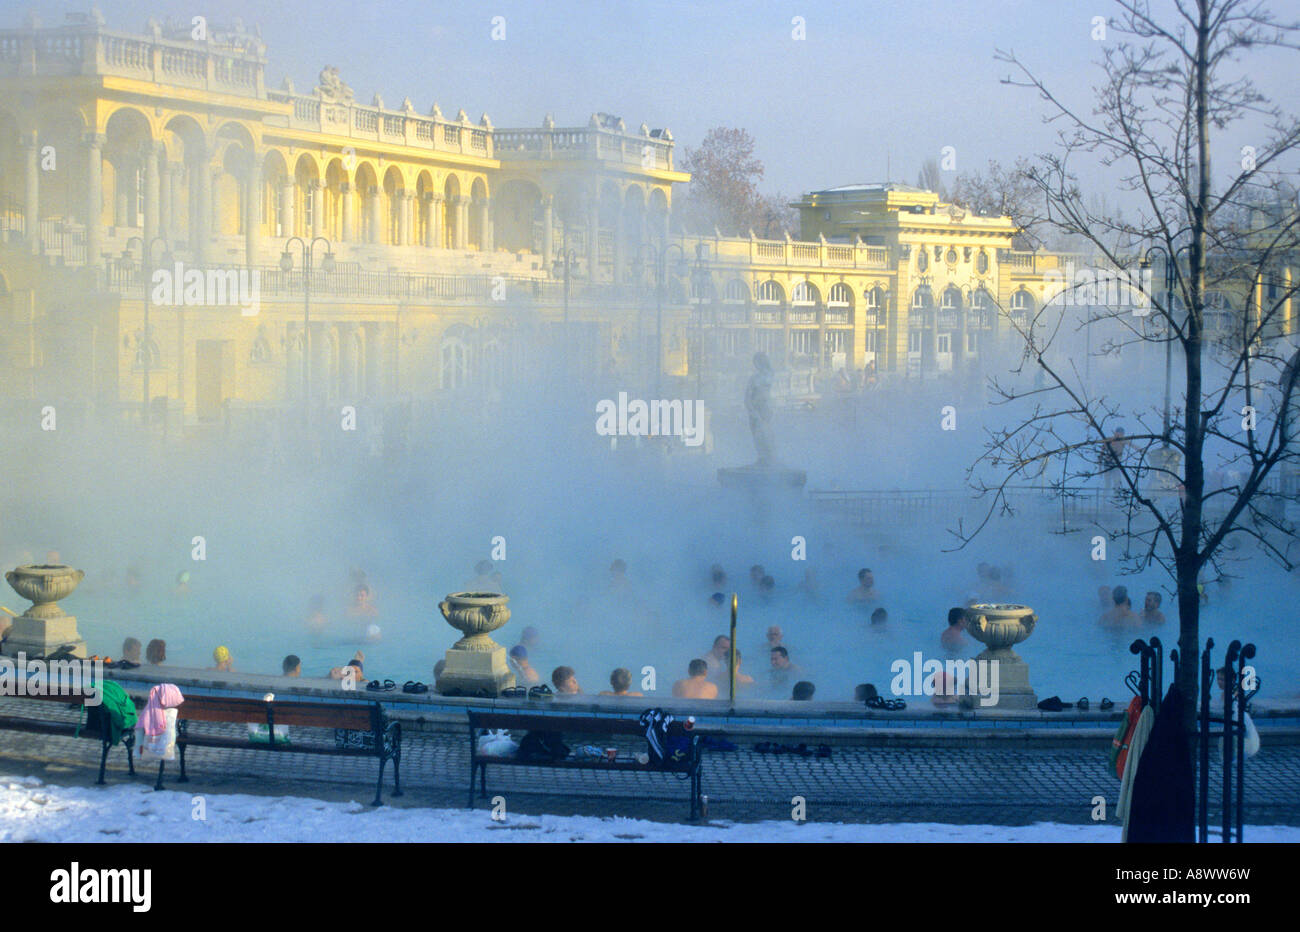 Spa And Thermal Bath Stock Photos & Spa And Thermal Bath Stock ...